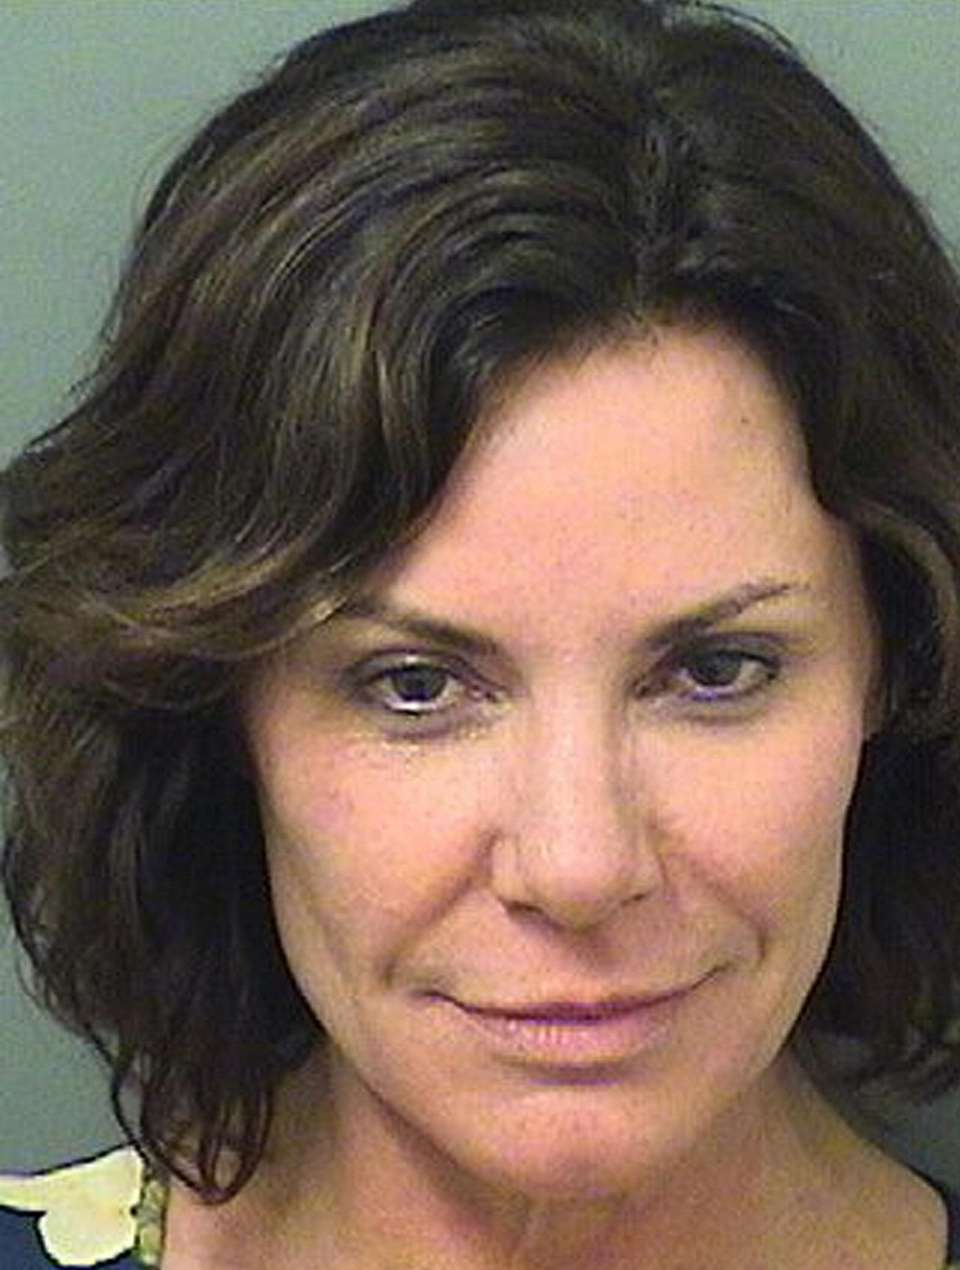 Palm Beach County court records show Luann de